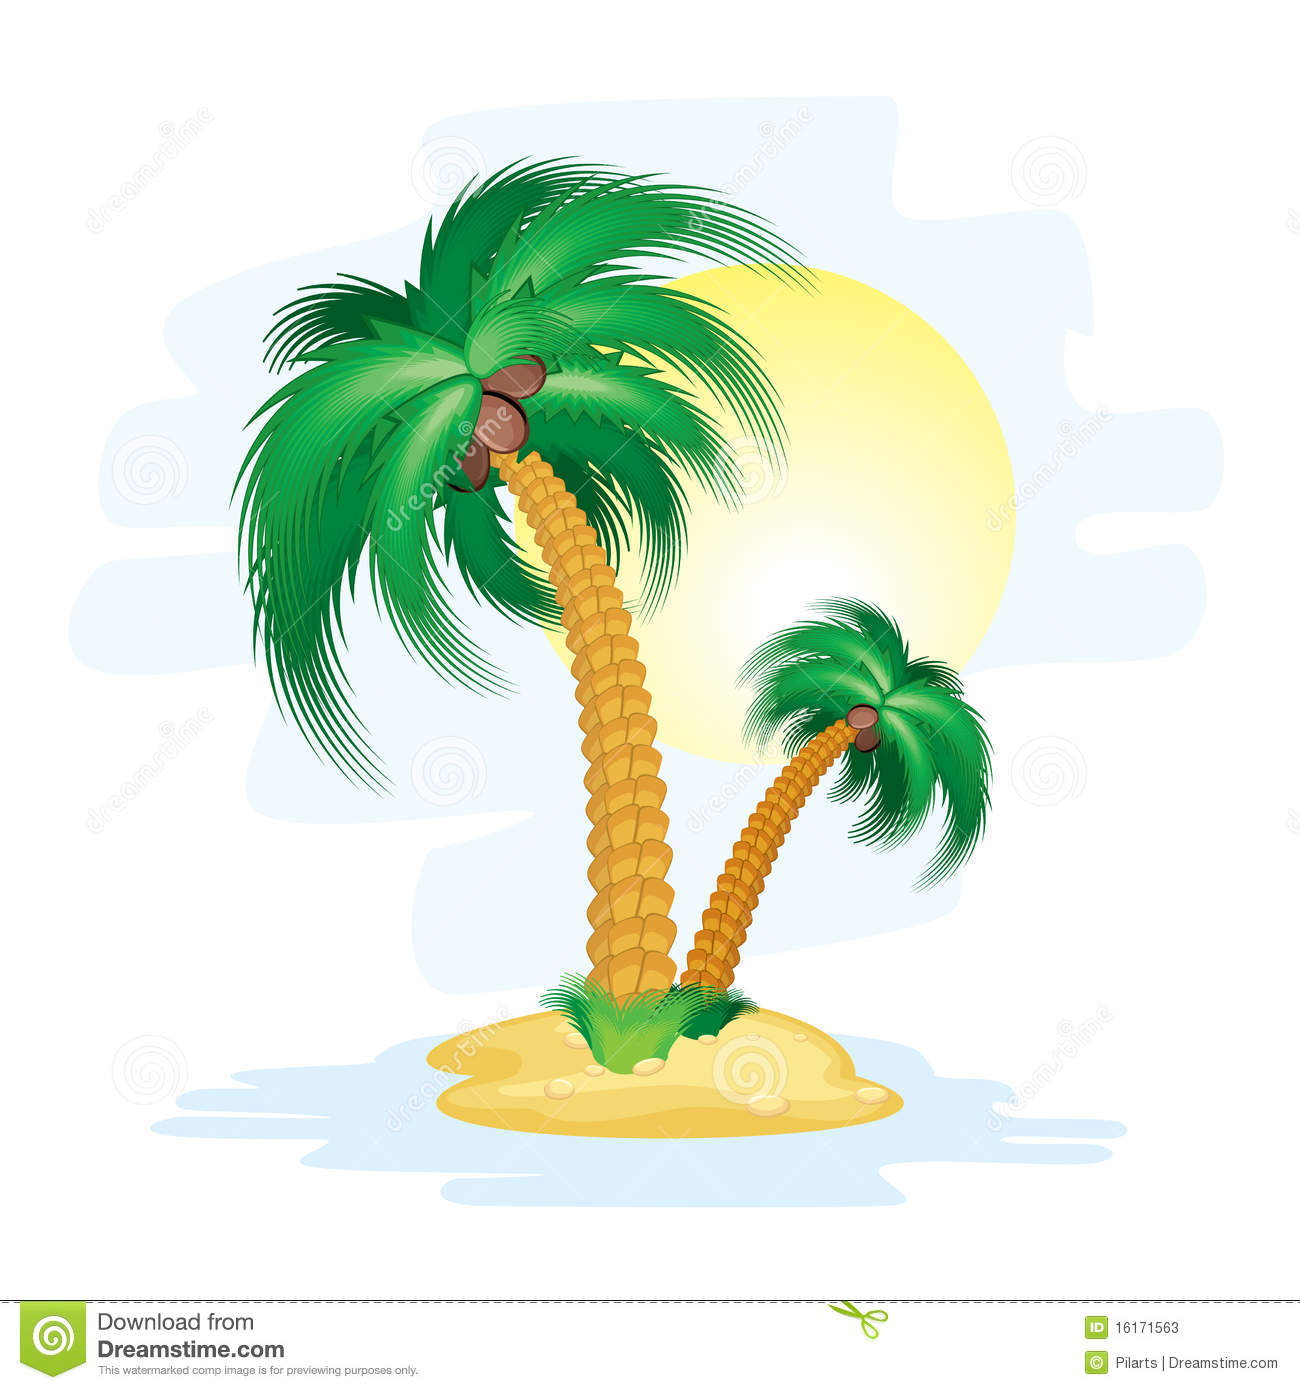 Illustration of stylized cartoon island with tropical palms.